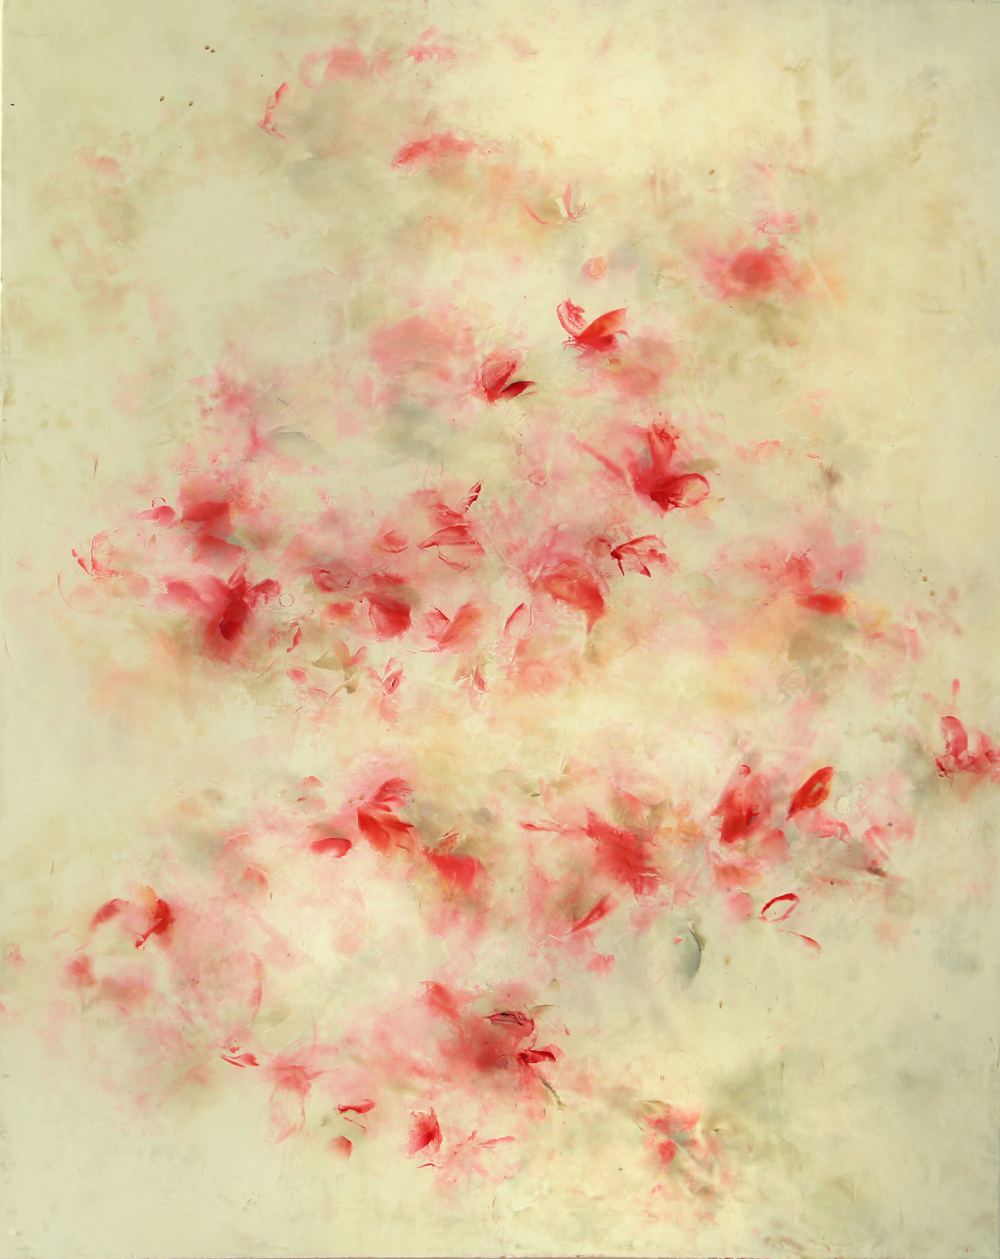 Salome, 2014, encaustic on canvas on panel, 60 x 48 inches